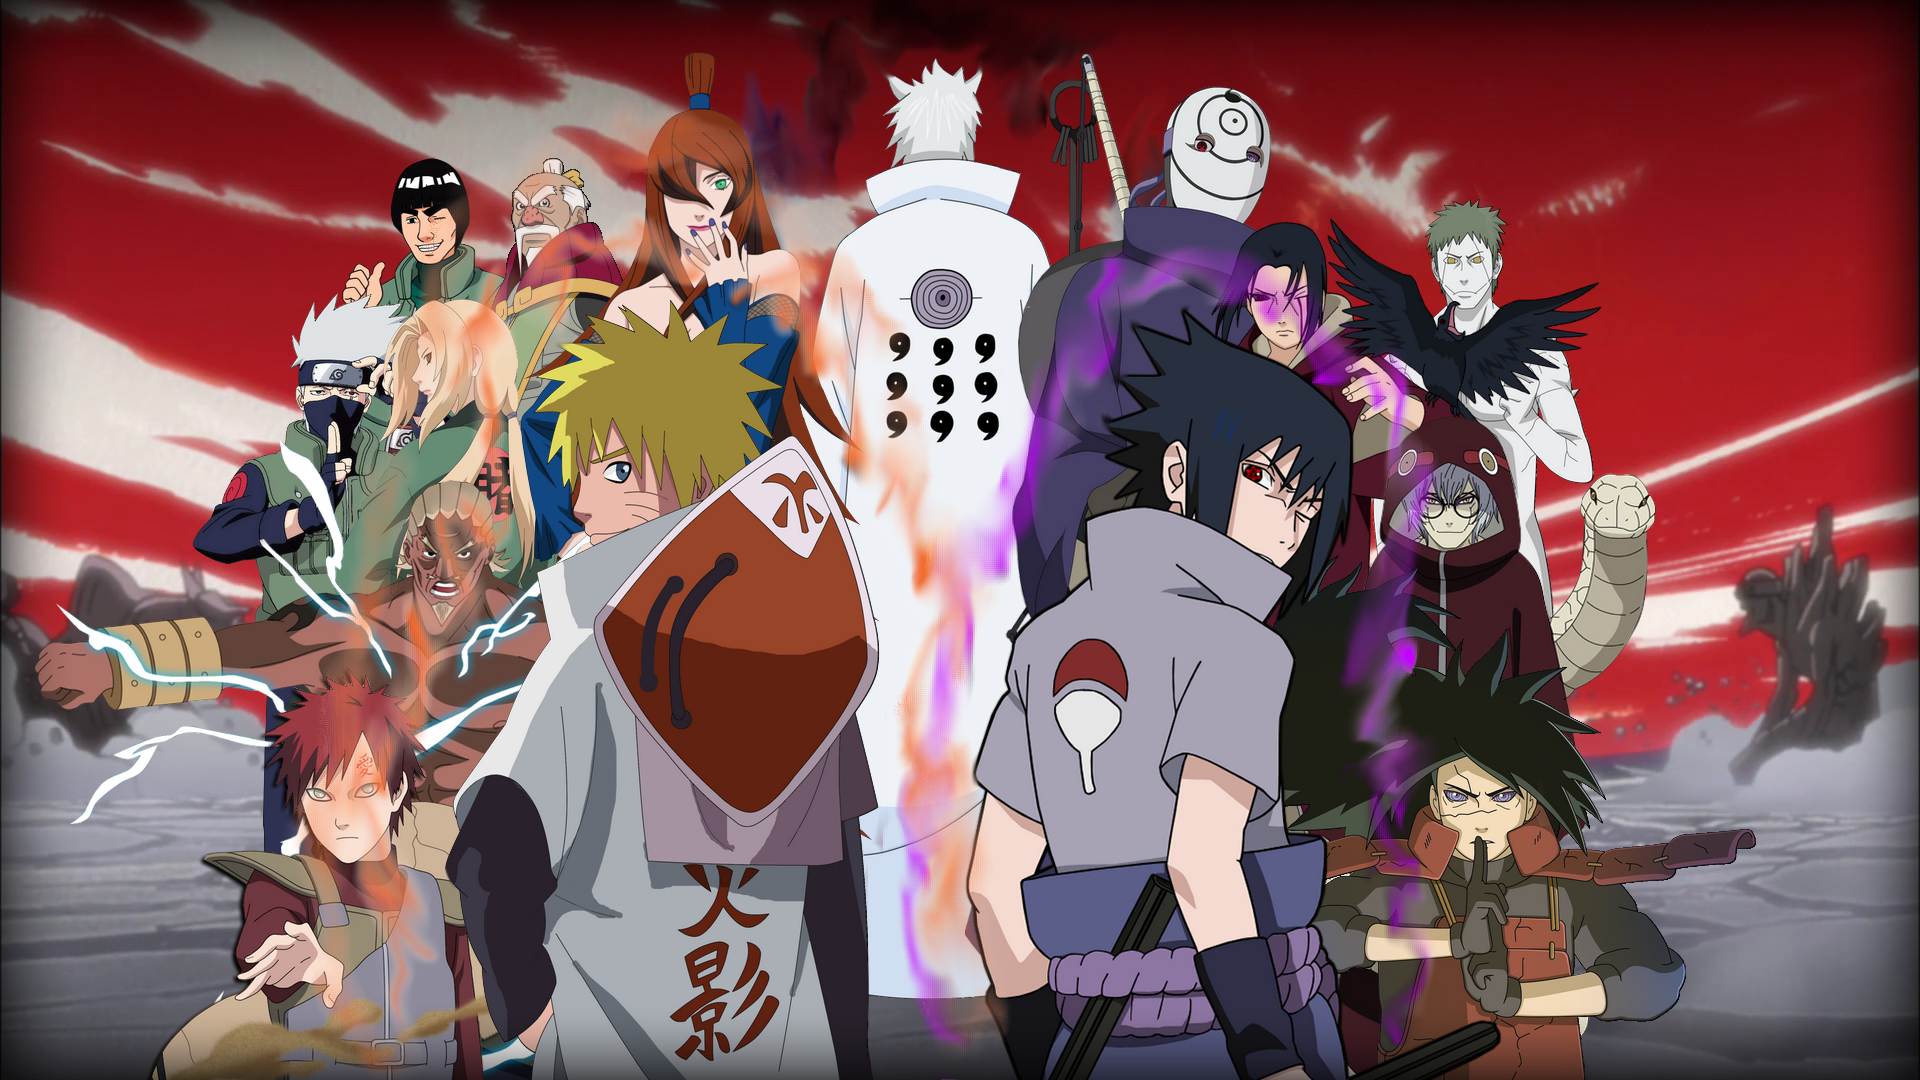 Naruto Shippuden War Wallpaper Full HD by brinx69 on DeviantArt